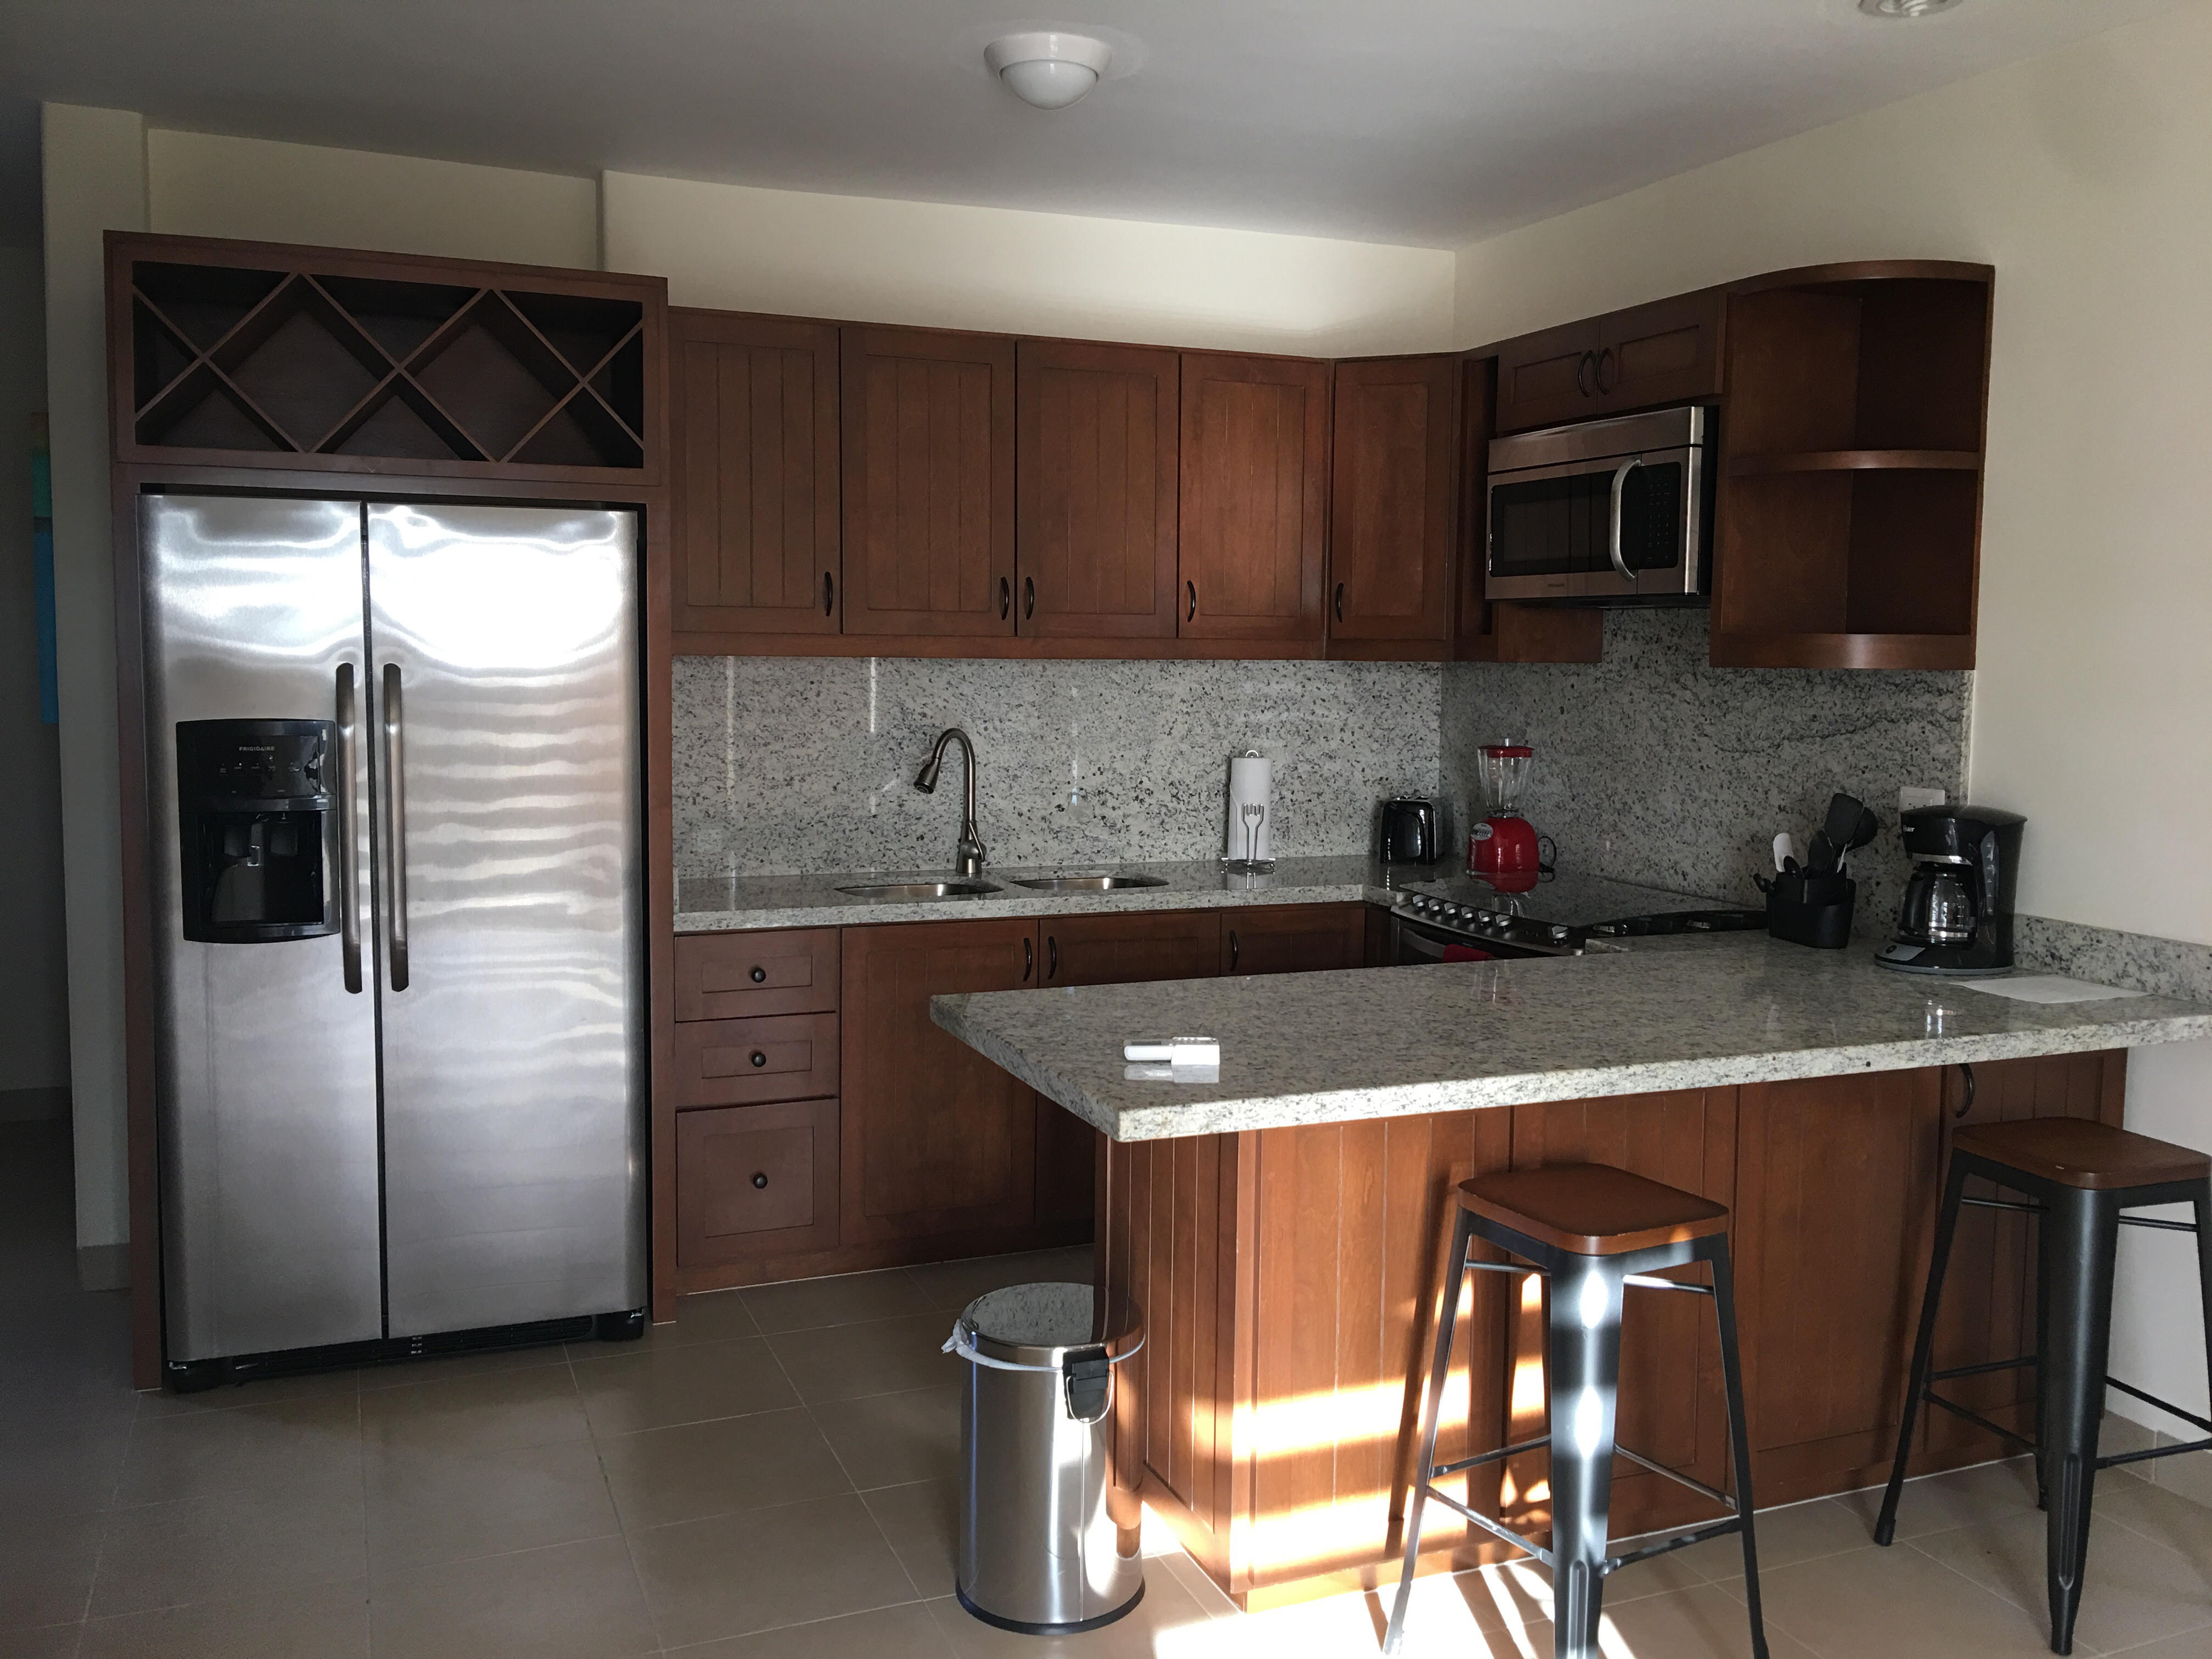 CDM Kitchen Suite 8224 4